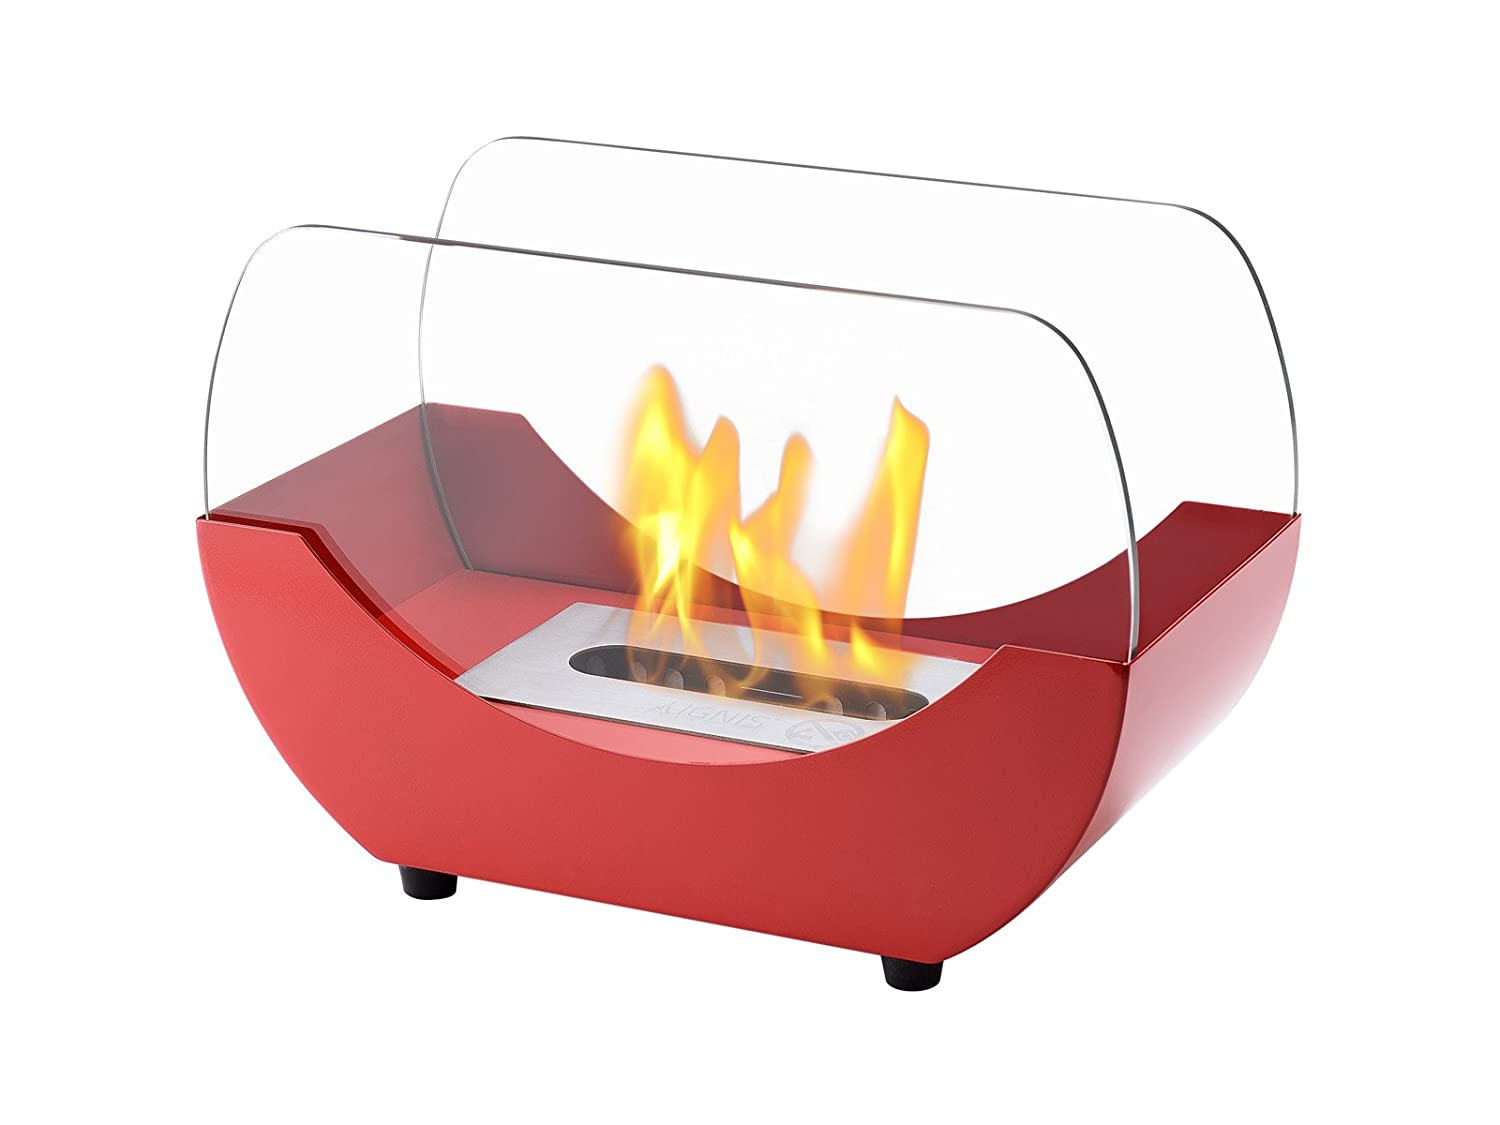 Ignis Portable Tabletop Ventless Bio Ethanol Fireplace - Liberty (Black)